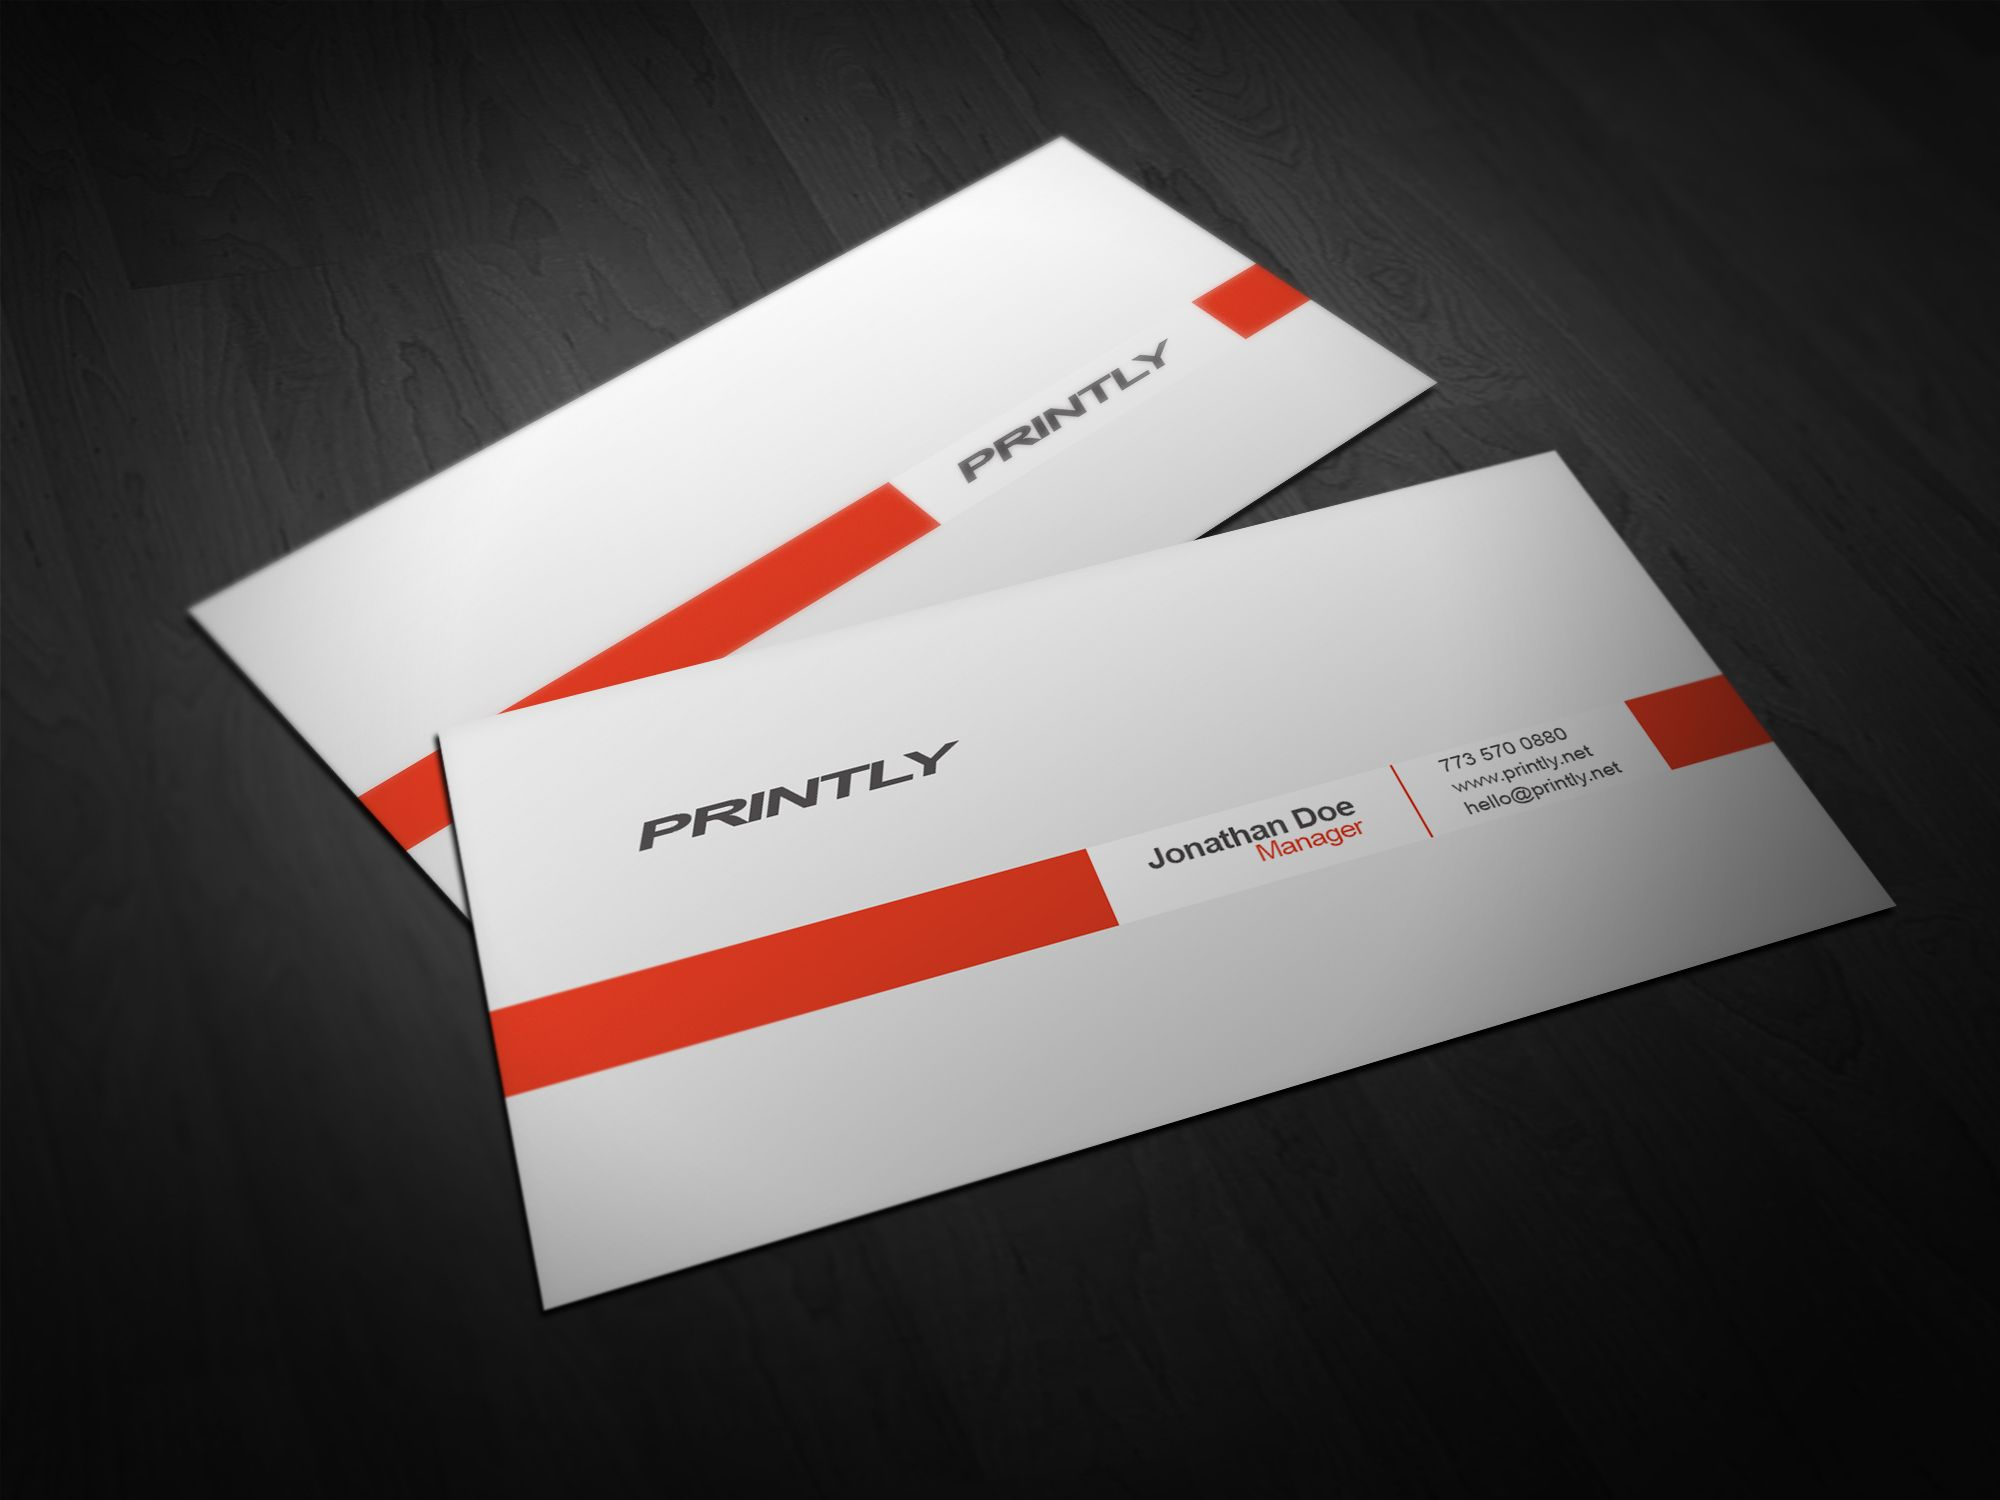 Free printly psd business card template printly design free printable business cards templates by printly accmission Gallery